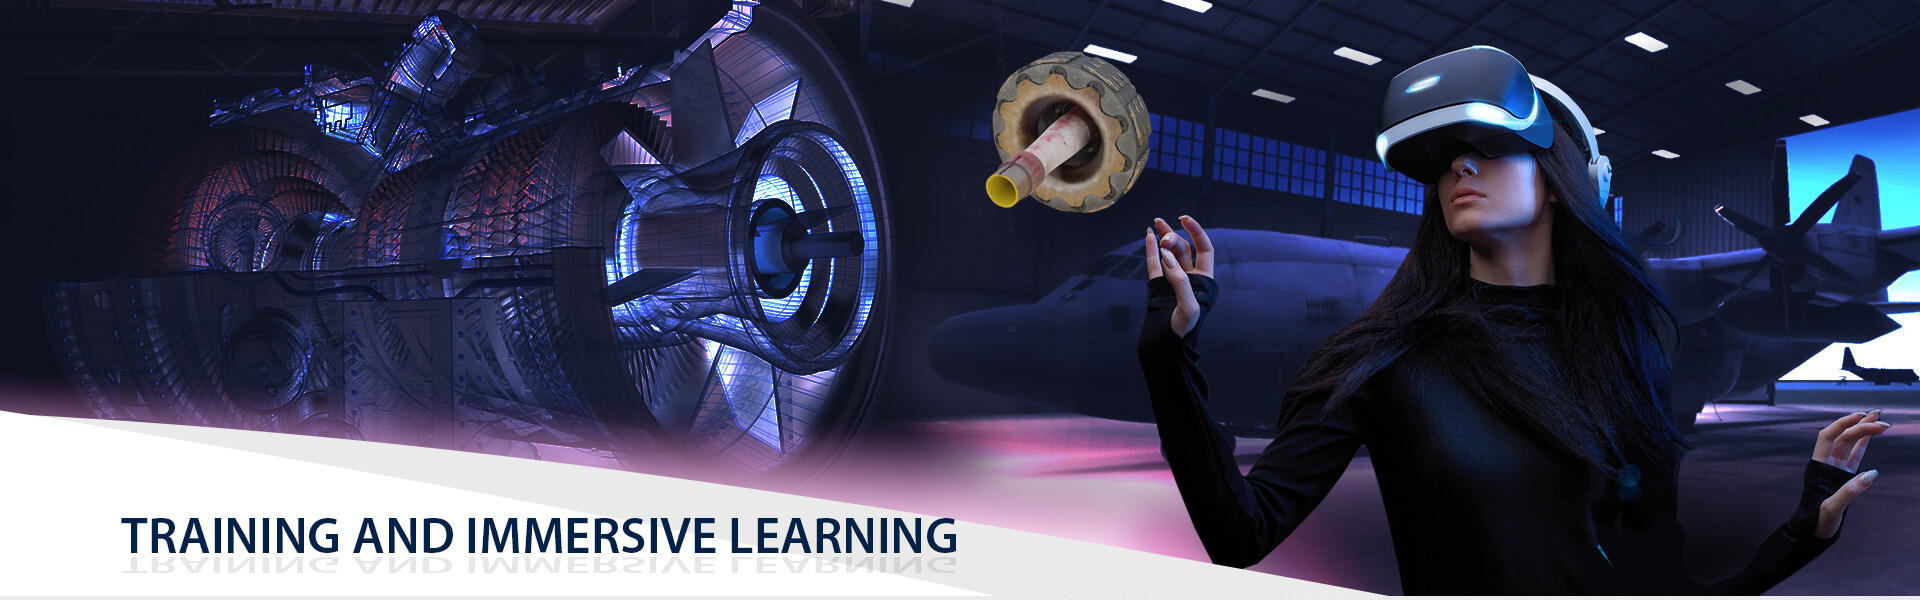 Training and Immersive Learning